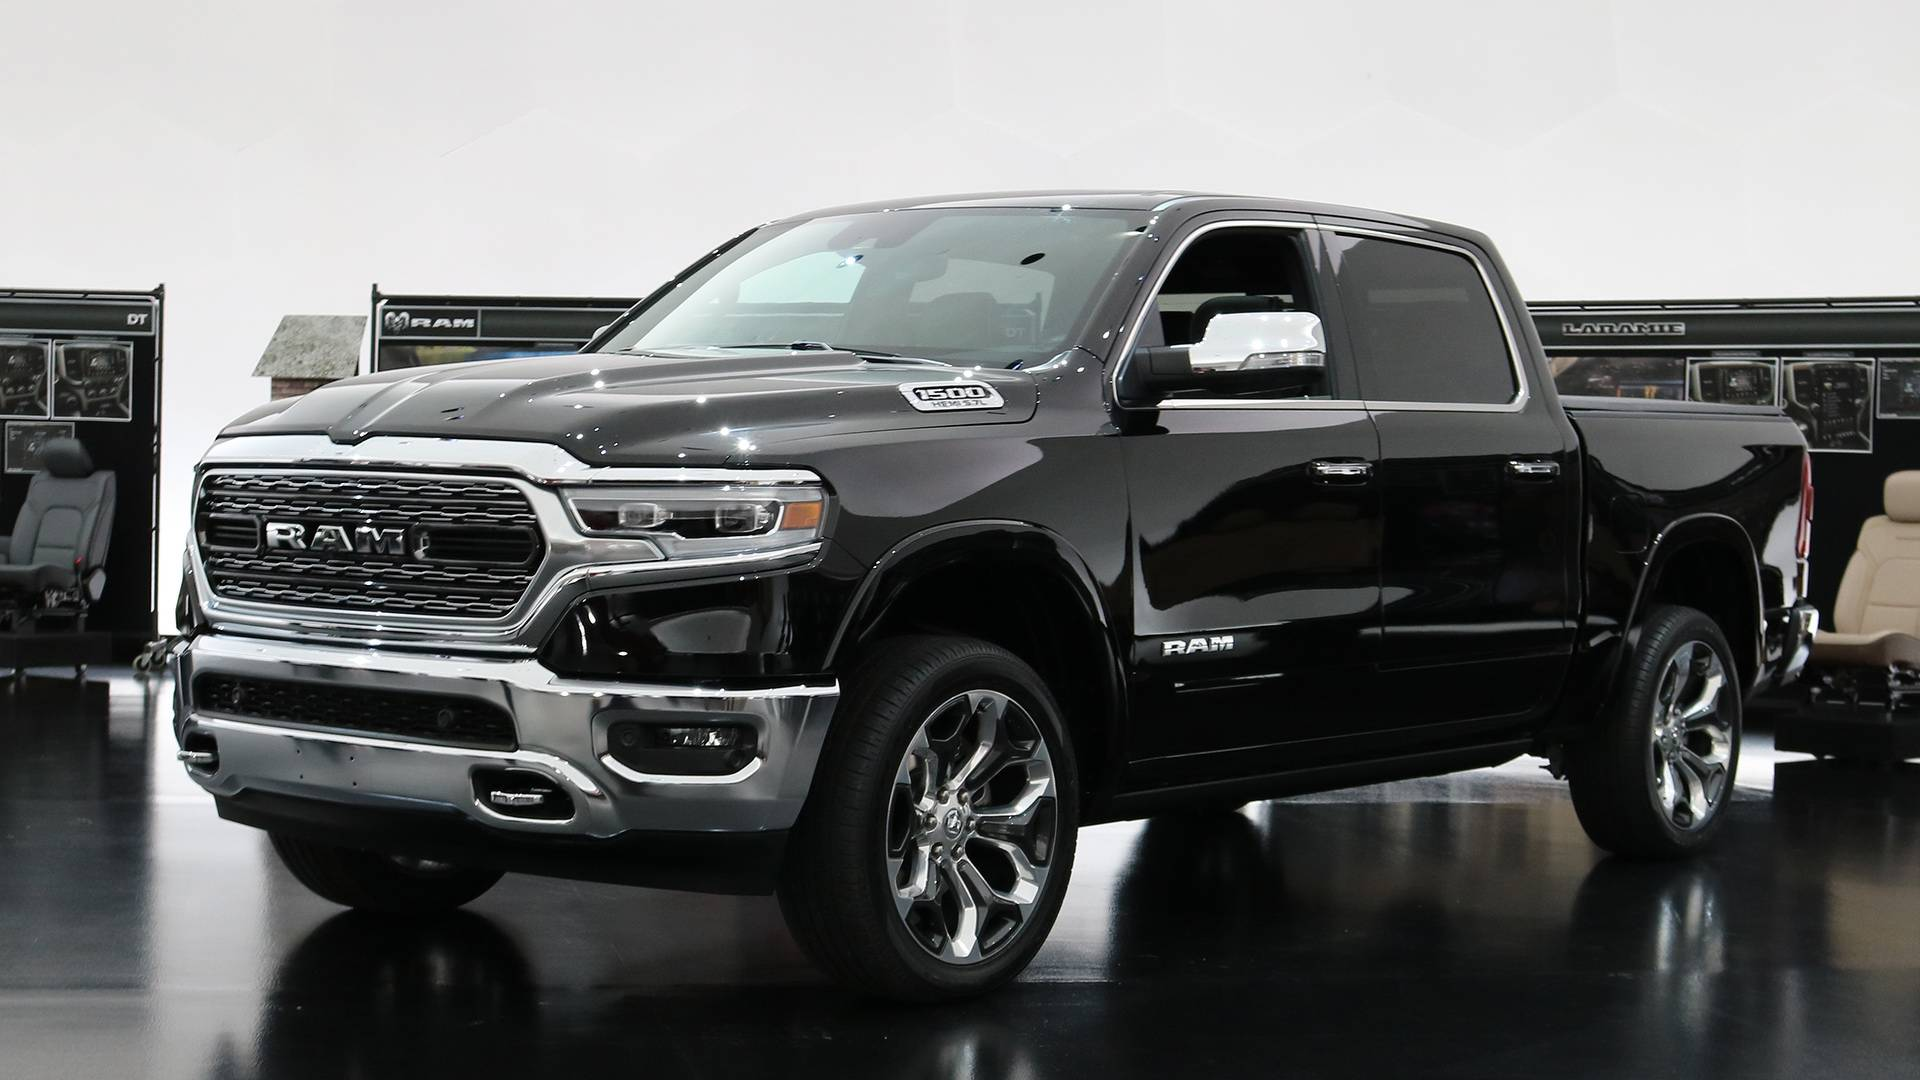 2019 Ram - 12-inch touchscreen vs. the competition